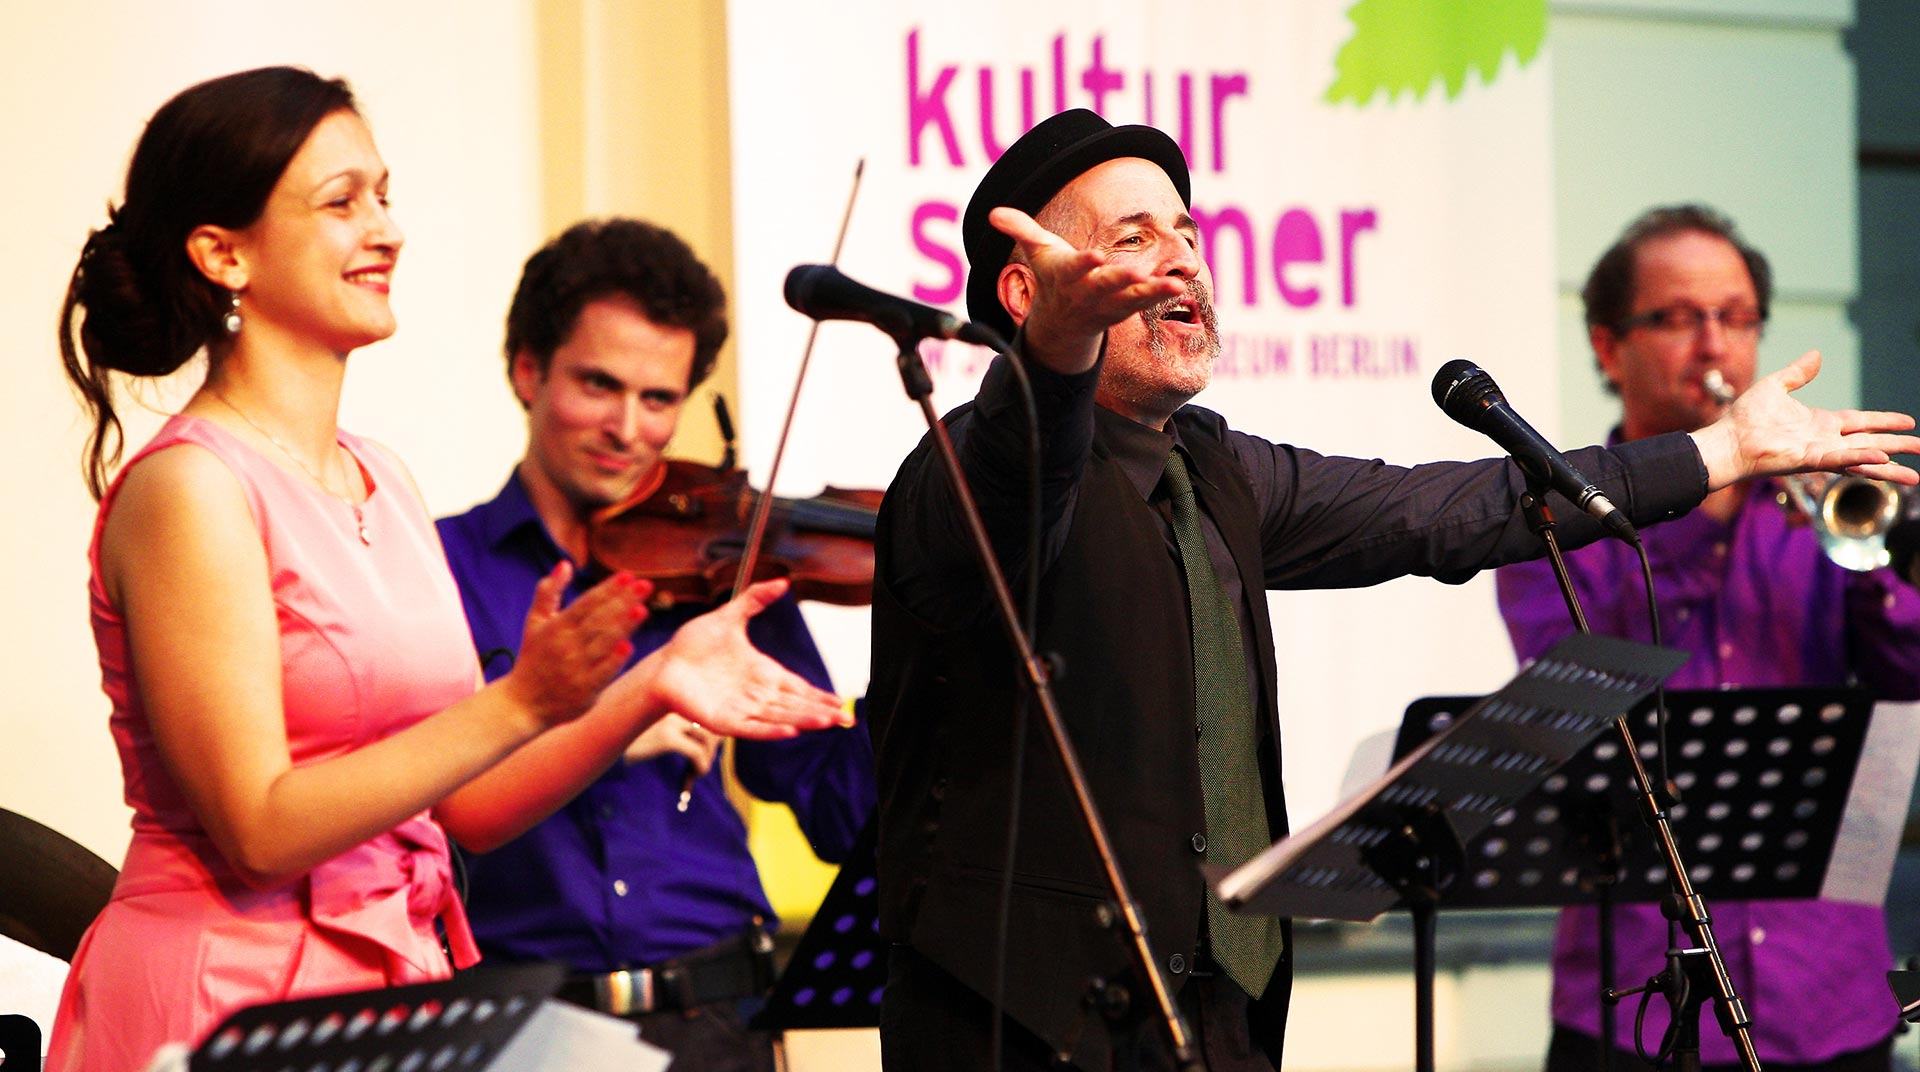 A group is performing music, one man is singing, one woman is clapping, and two other men are playing the violin and the trumpet